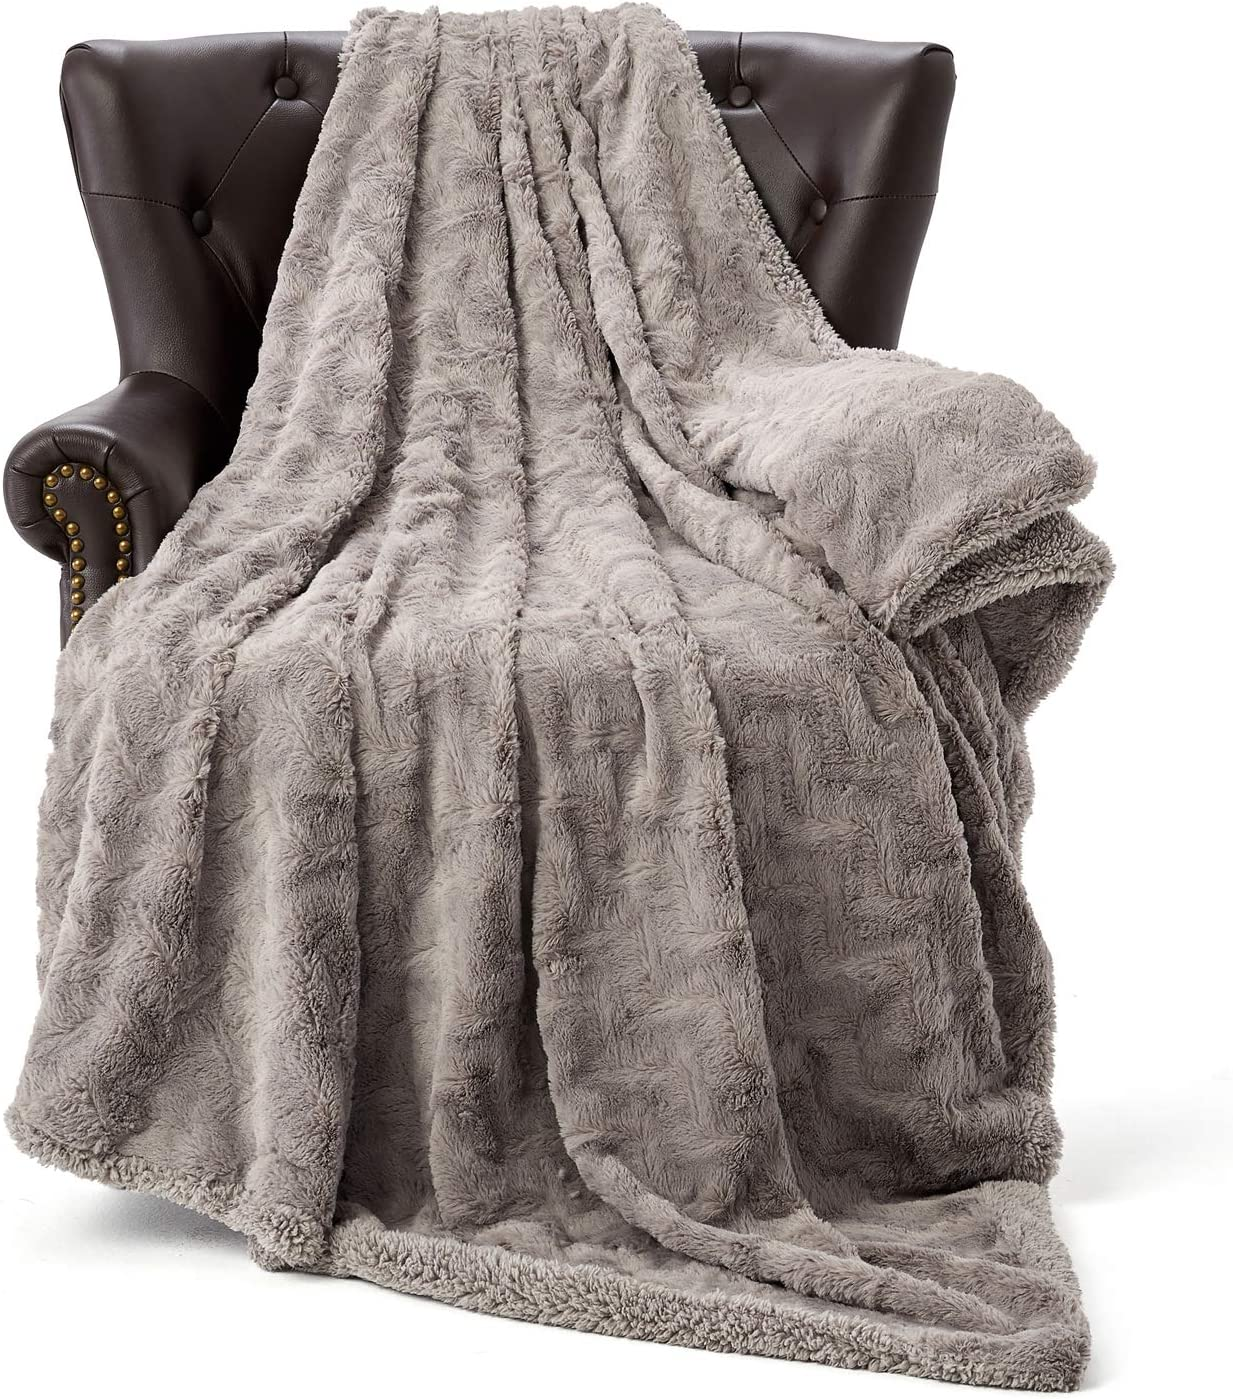 HT&PJ Fluffy Faux Fur Throw Blanket Reverse Plush Sherpa Thick Warm Soft for Sofa Bedroom Decor Throw Size Solid (Purple Grey, 50